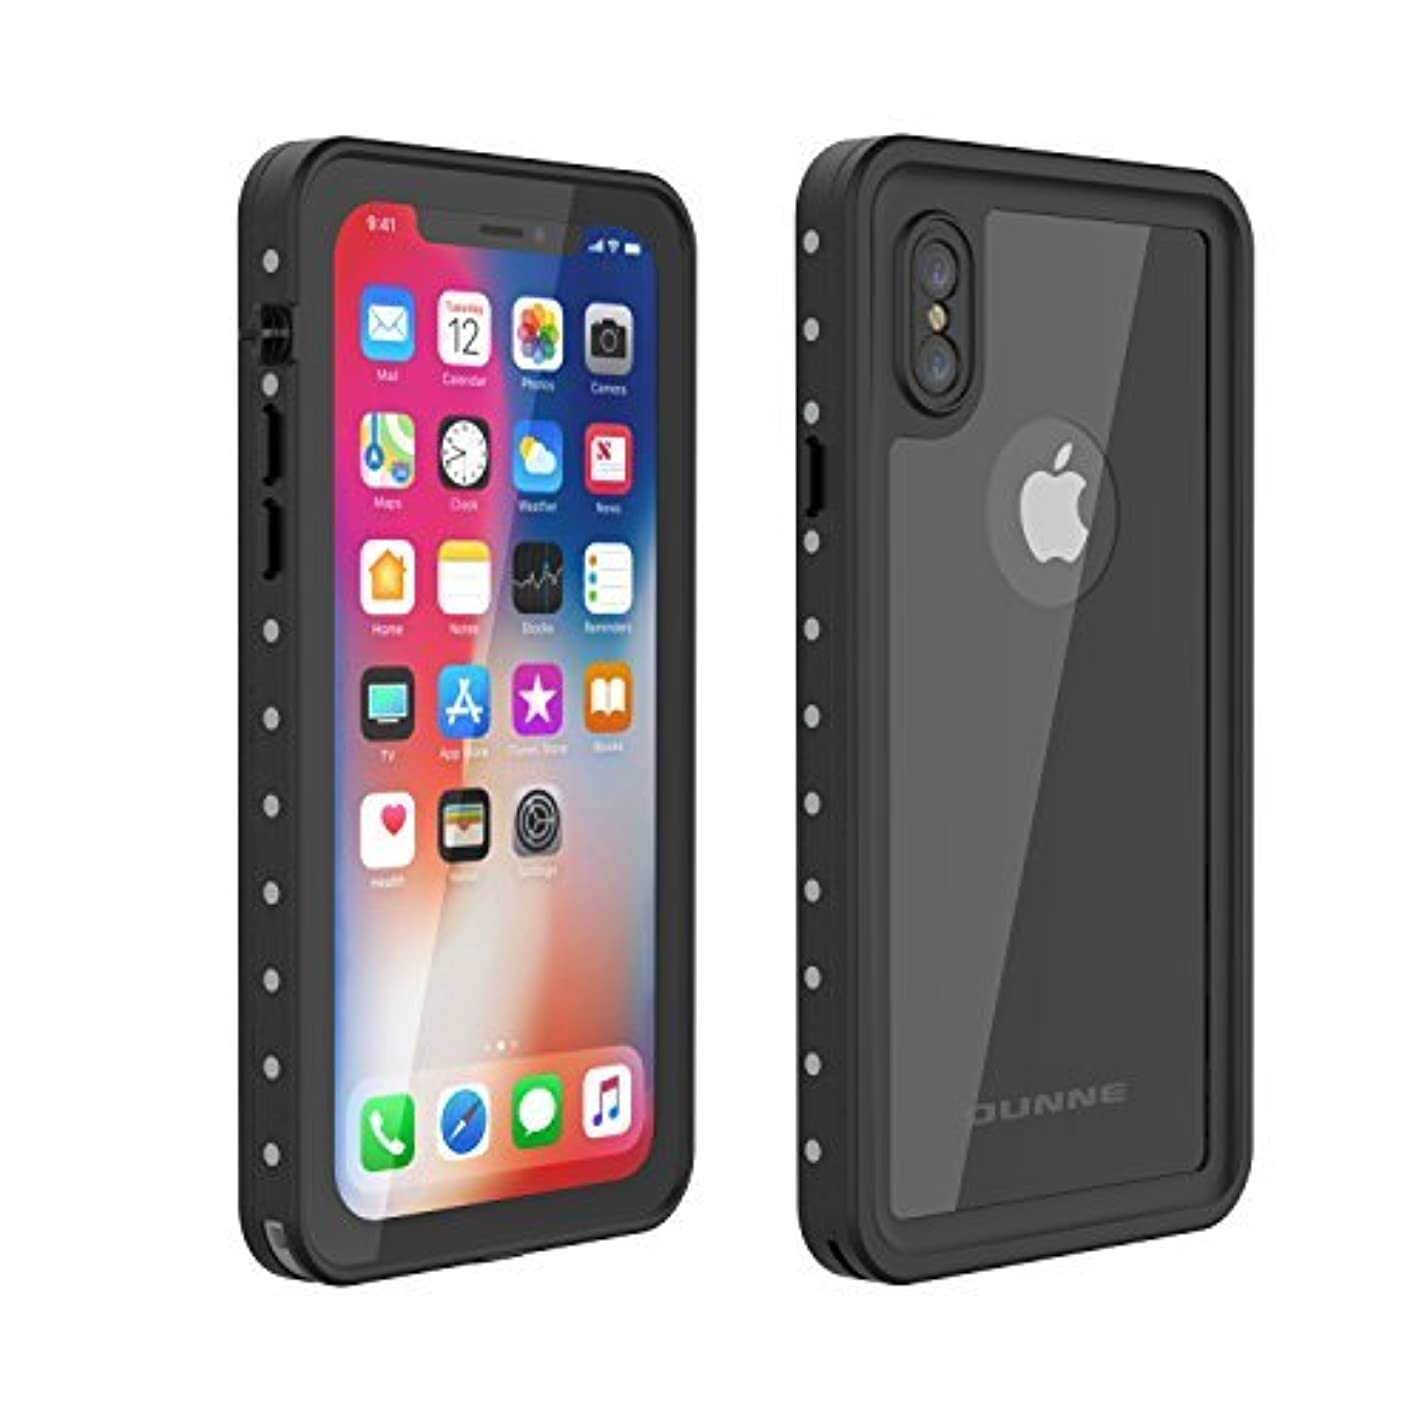 OUNNE iPhone X/Xs Waterproof Case, Underwater Full Sealed Cover Snowproof Shockproof Dirtproof IP68 Certified Waterproof Case with Built-in Screen Protector for iPhone X/Xs